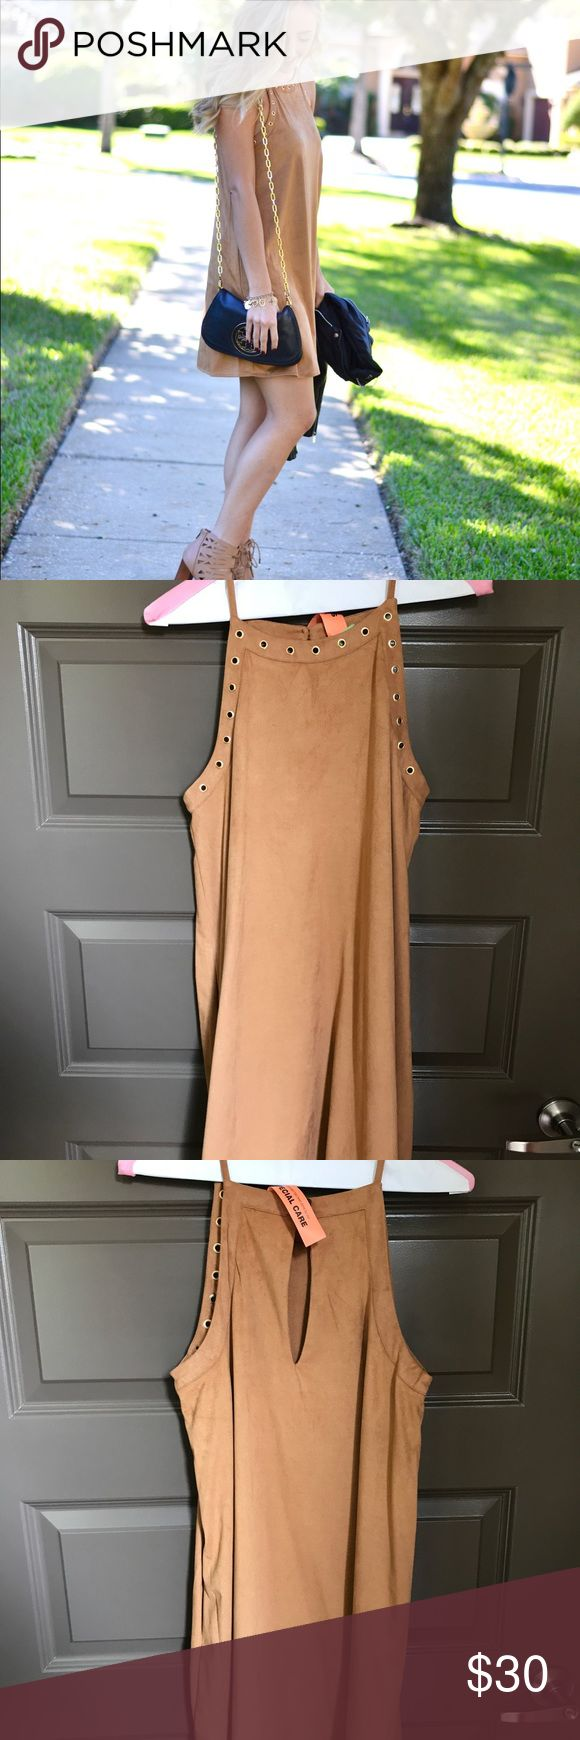 Suede Camel Dress Suede camel colored dress with gold details at the top Gianni Bini Dresses